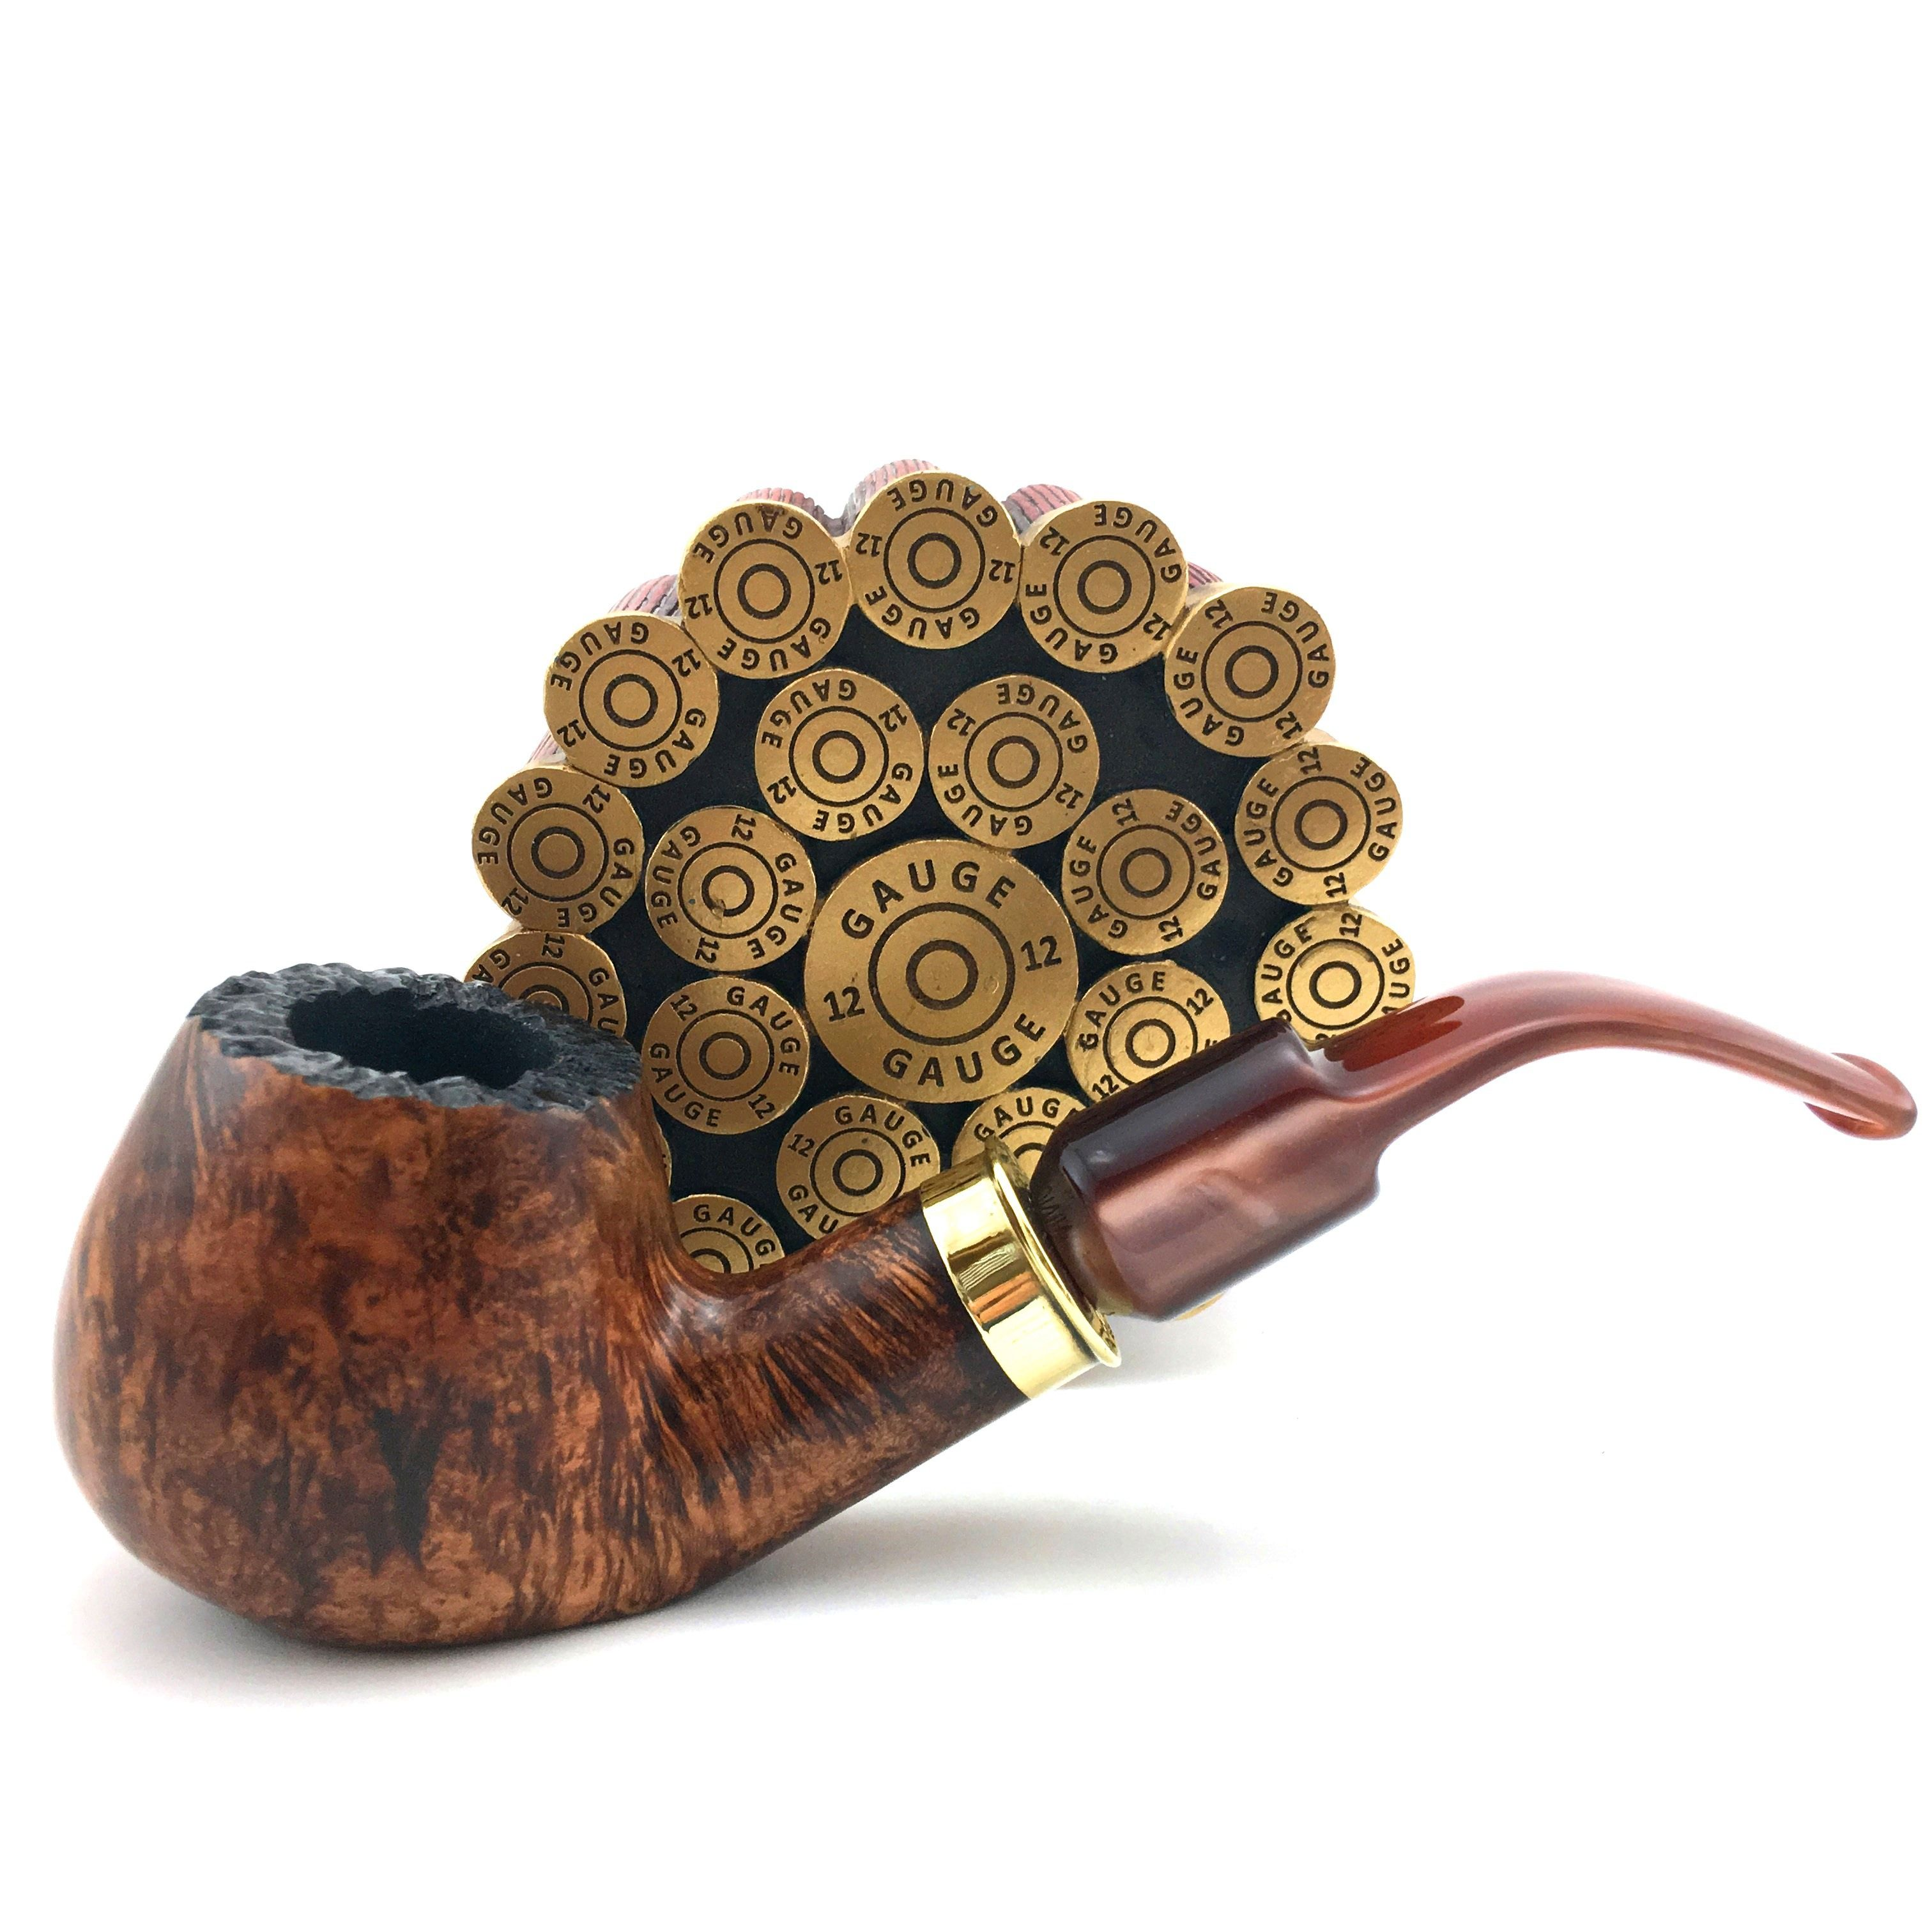 Pin on Boswell Shotshell pipes